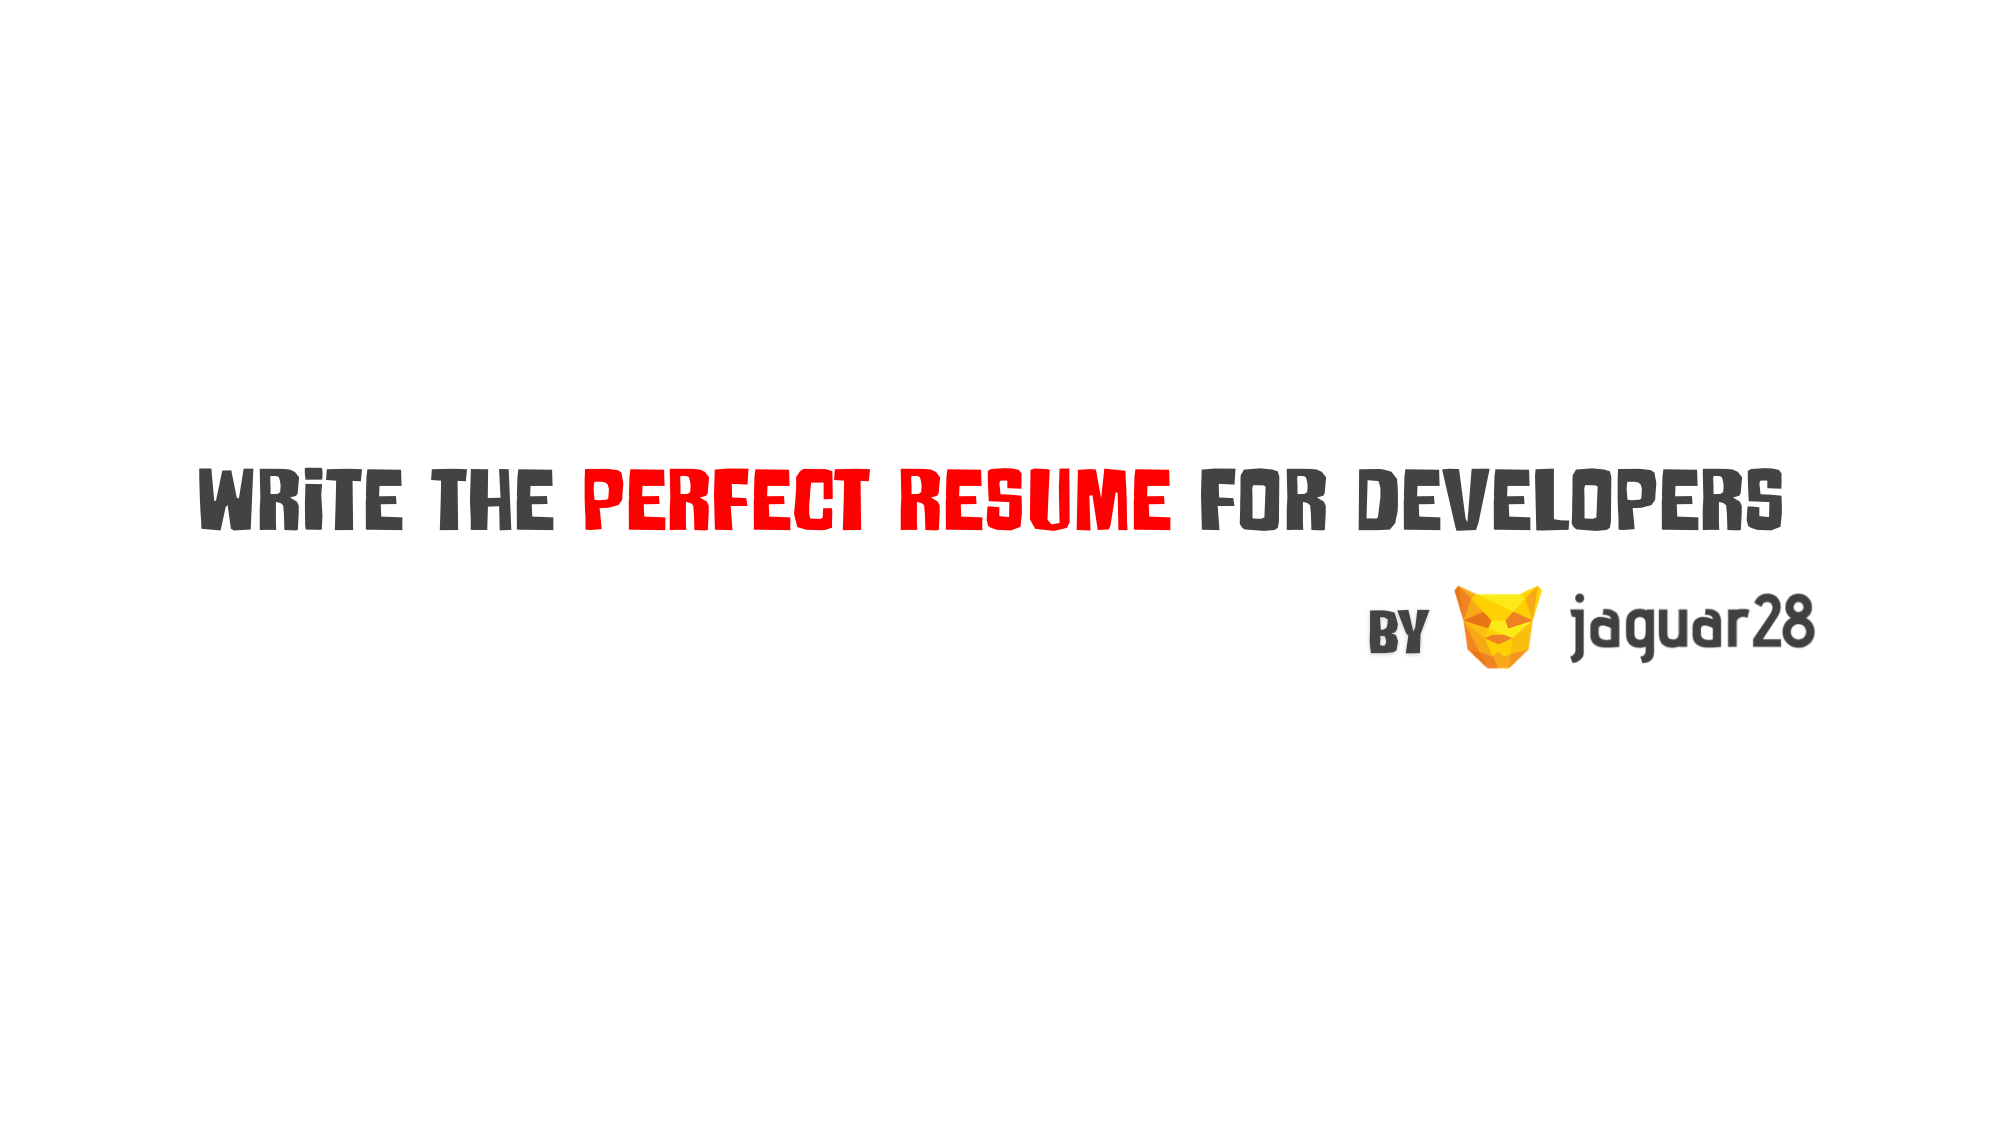 This Post To Help You Easily Write A Kick Ass Resume If You Are A  Developer. Feel Free To Give Us Your Feedback If You Want To Add Or Change  Something!  Kick Ass Resume